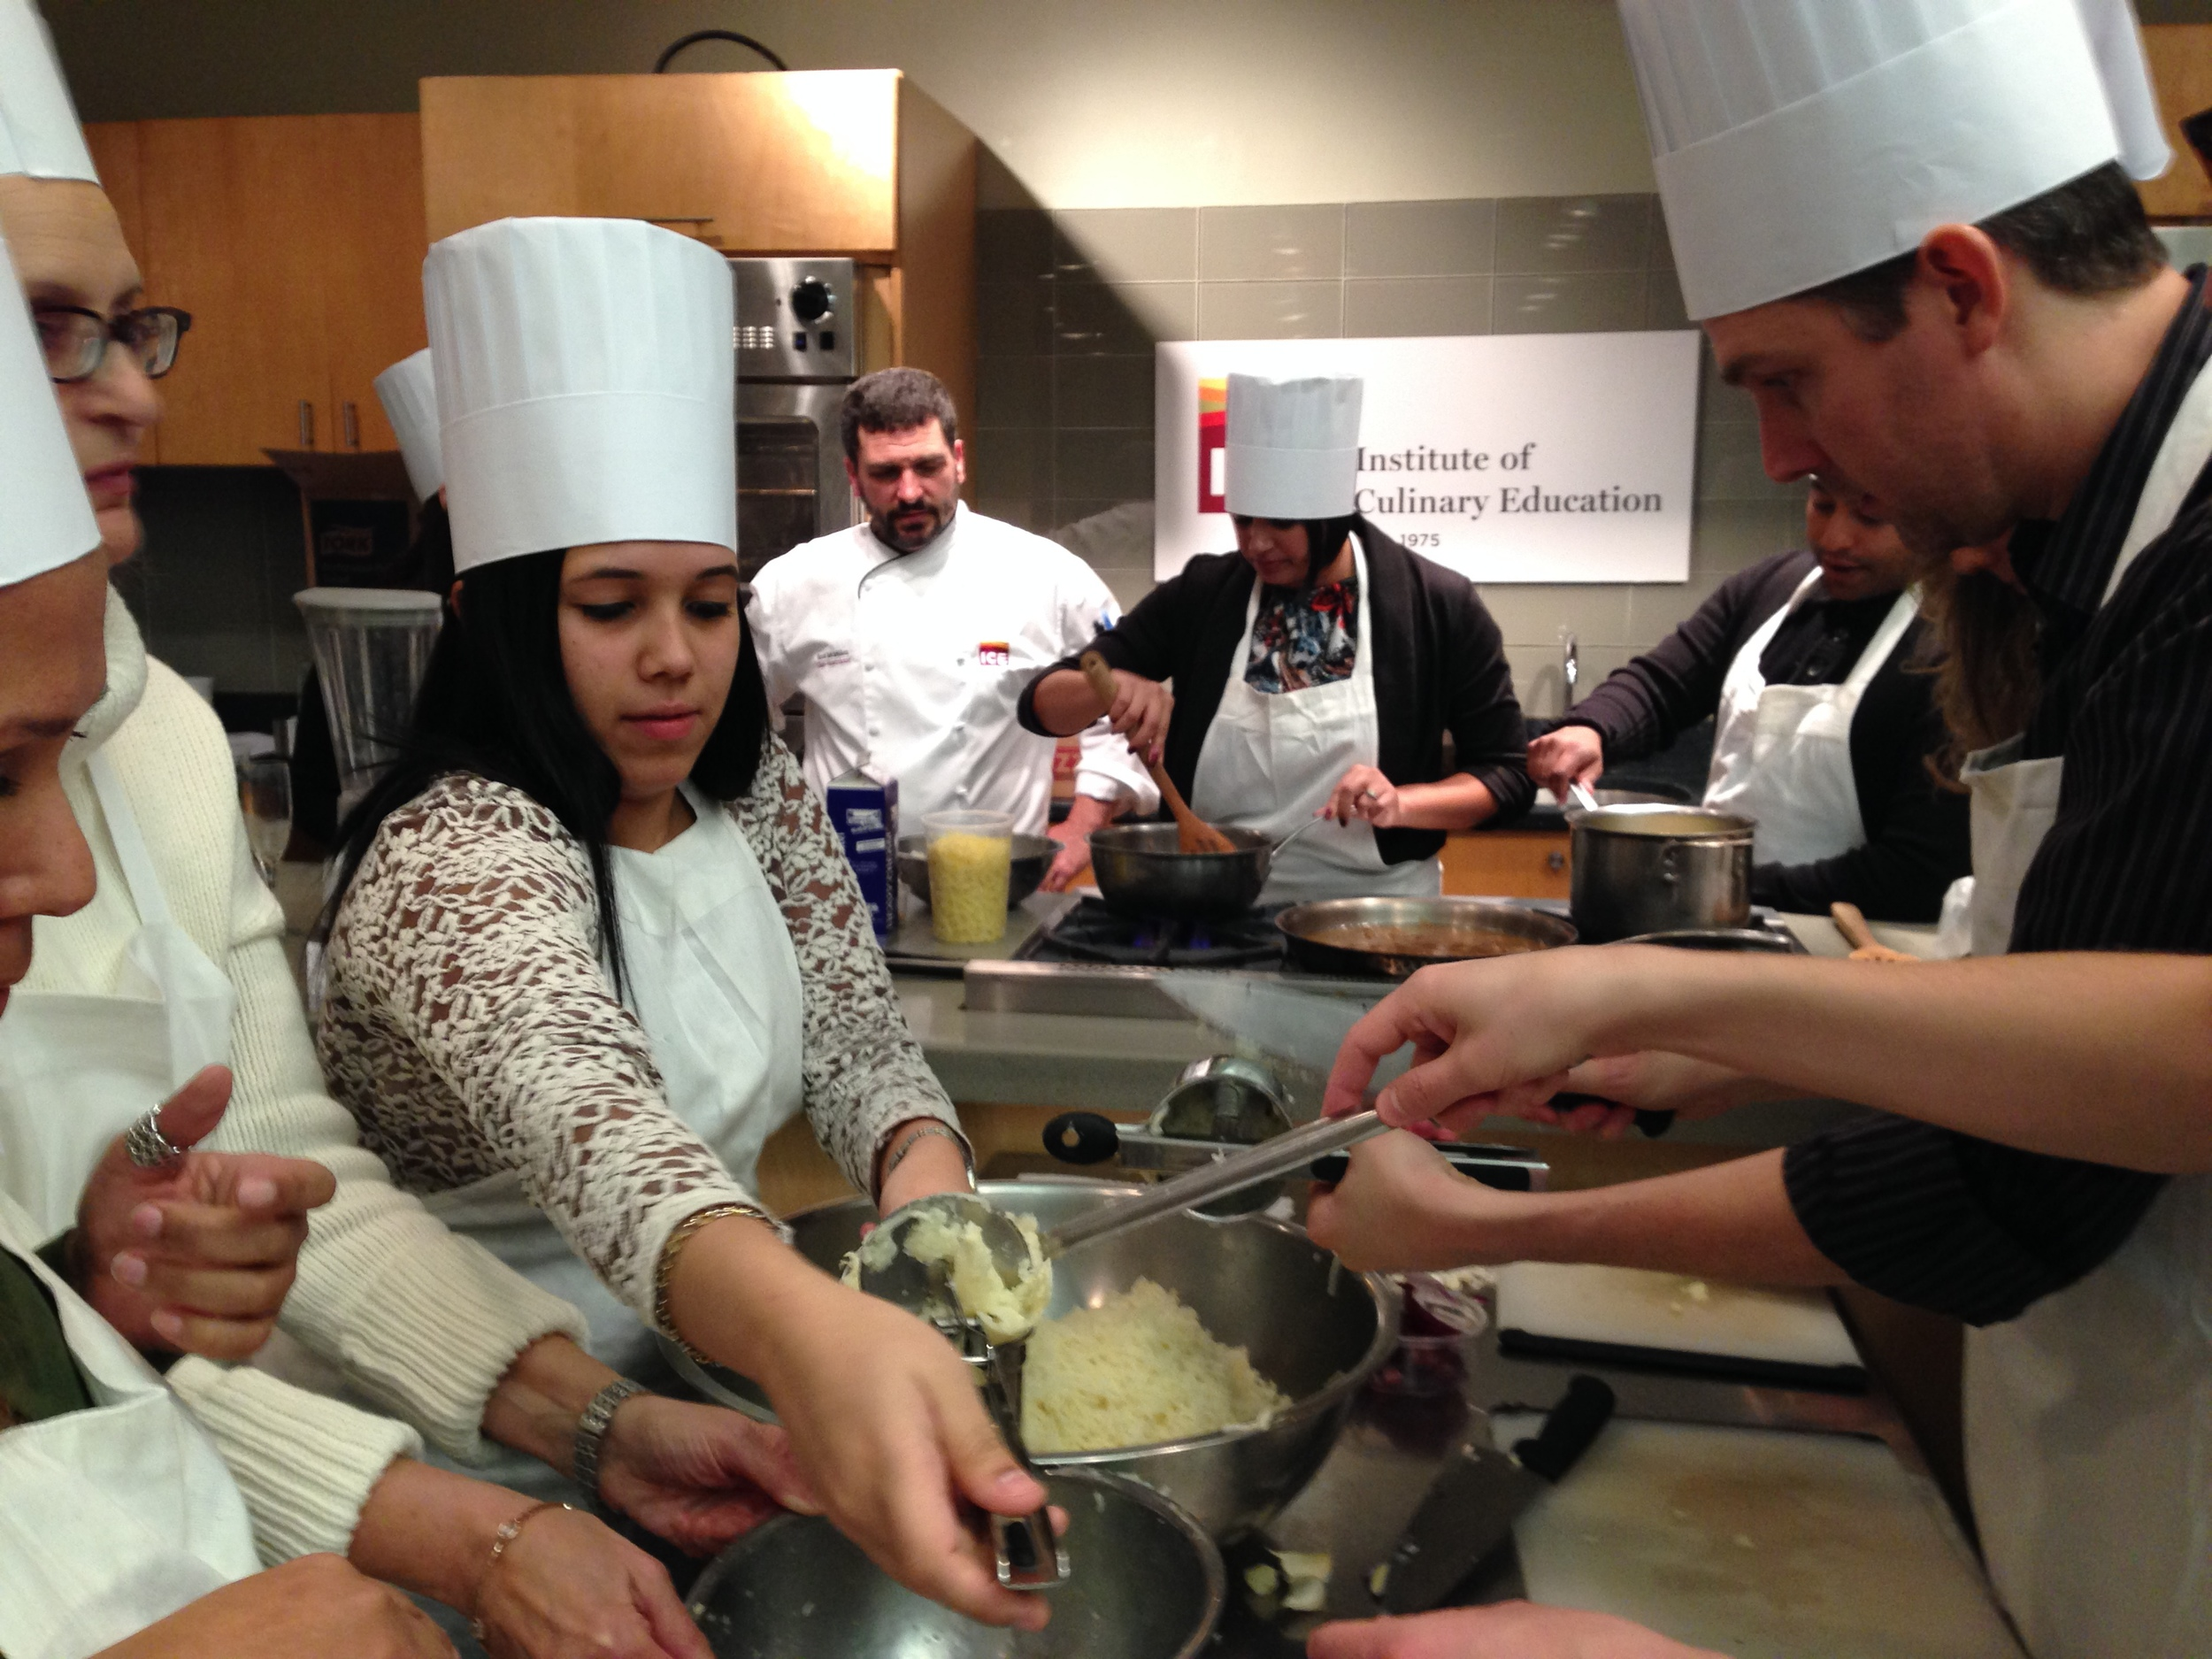 Stephanie Carril and Matt Bray in deep concentration as they prepare dinner as part of the annual firm holiday party/cooking lesson at the Institute of Culinary Education.